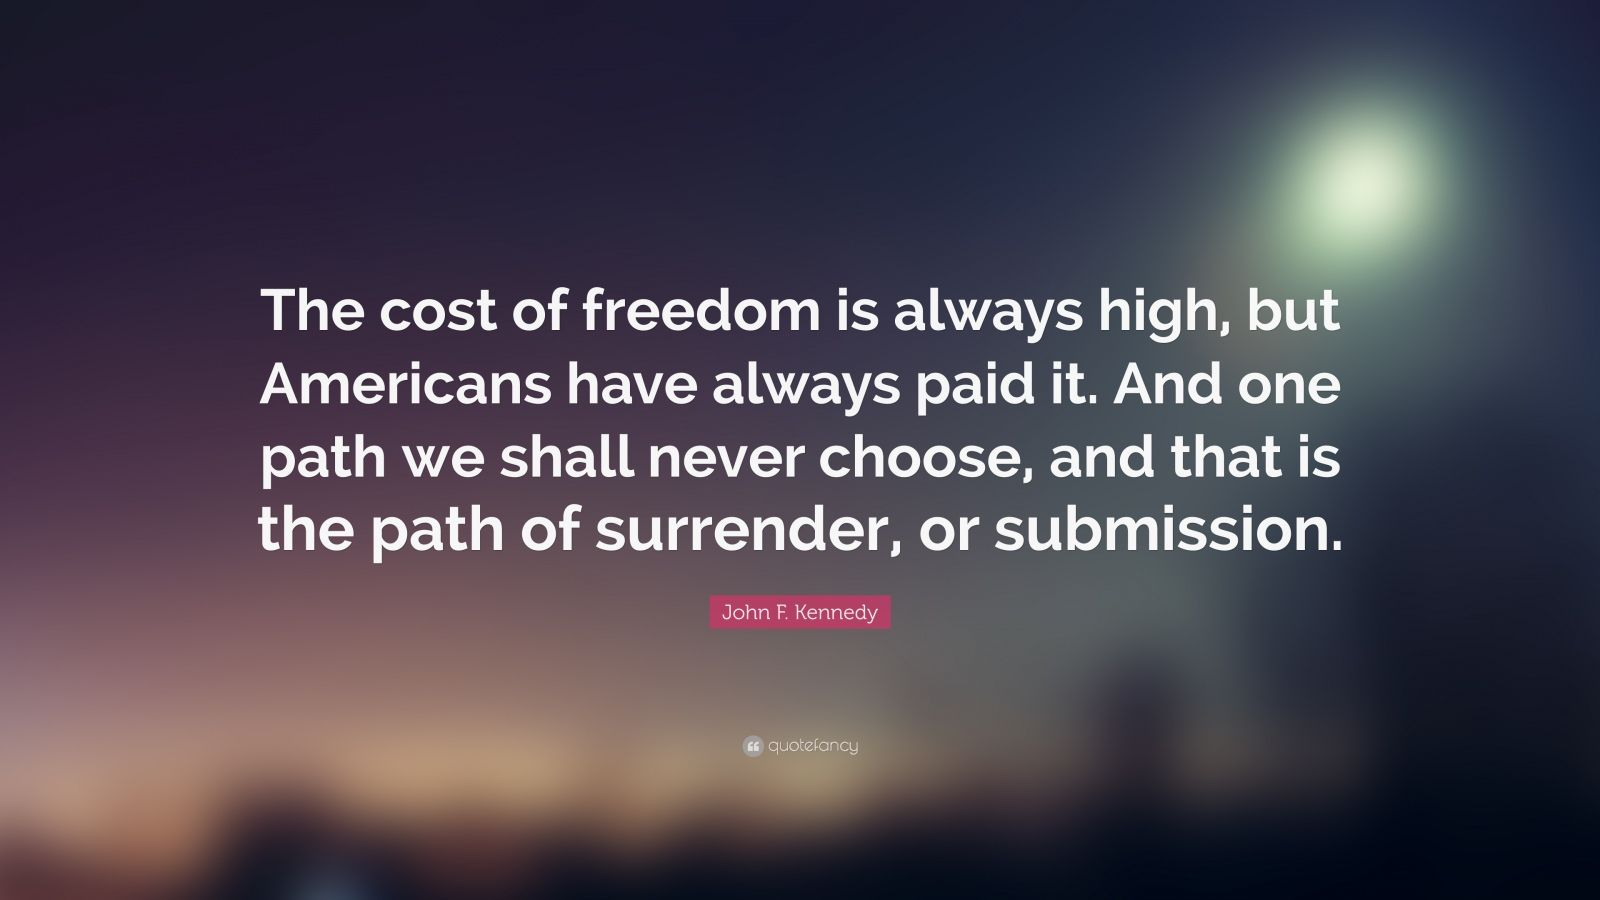 """John F. Kennedy Quote: """"The cost of freedom is always high, but Americans have always paid it. And one path we shall never choose, and that is the path of surrender, or submission."""""""